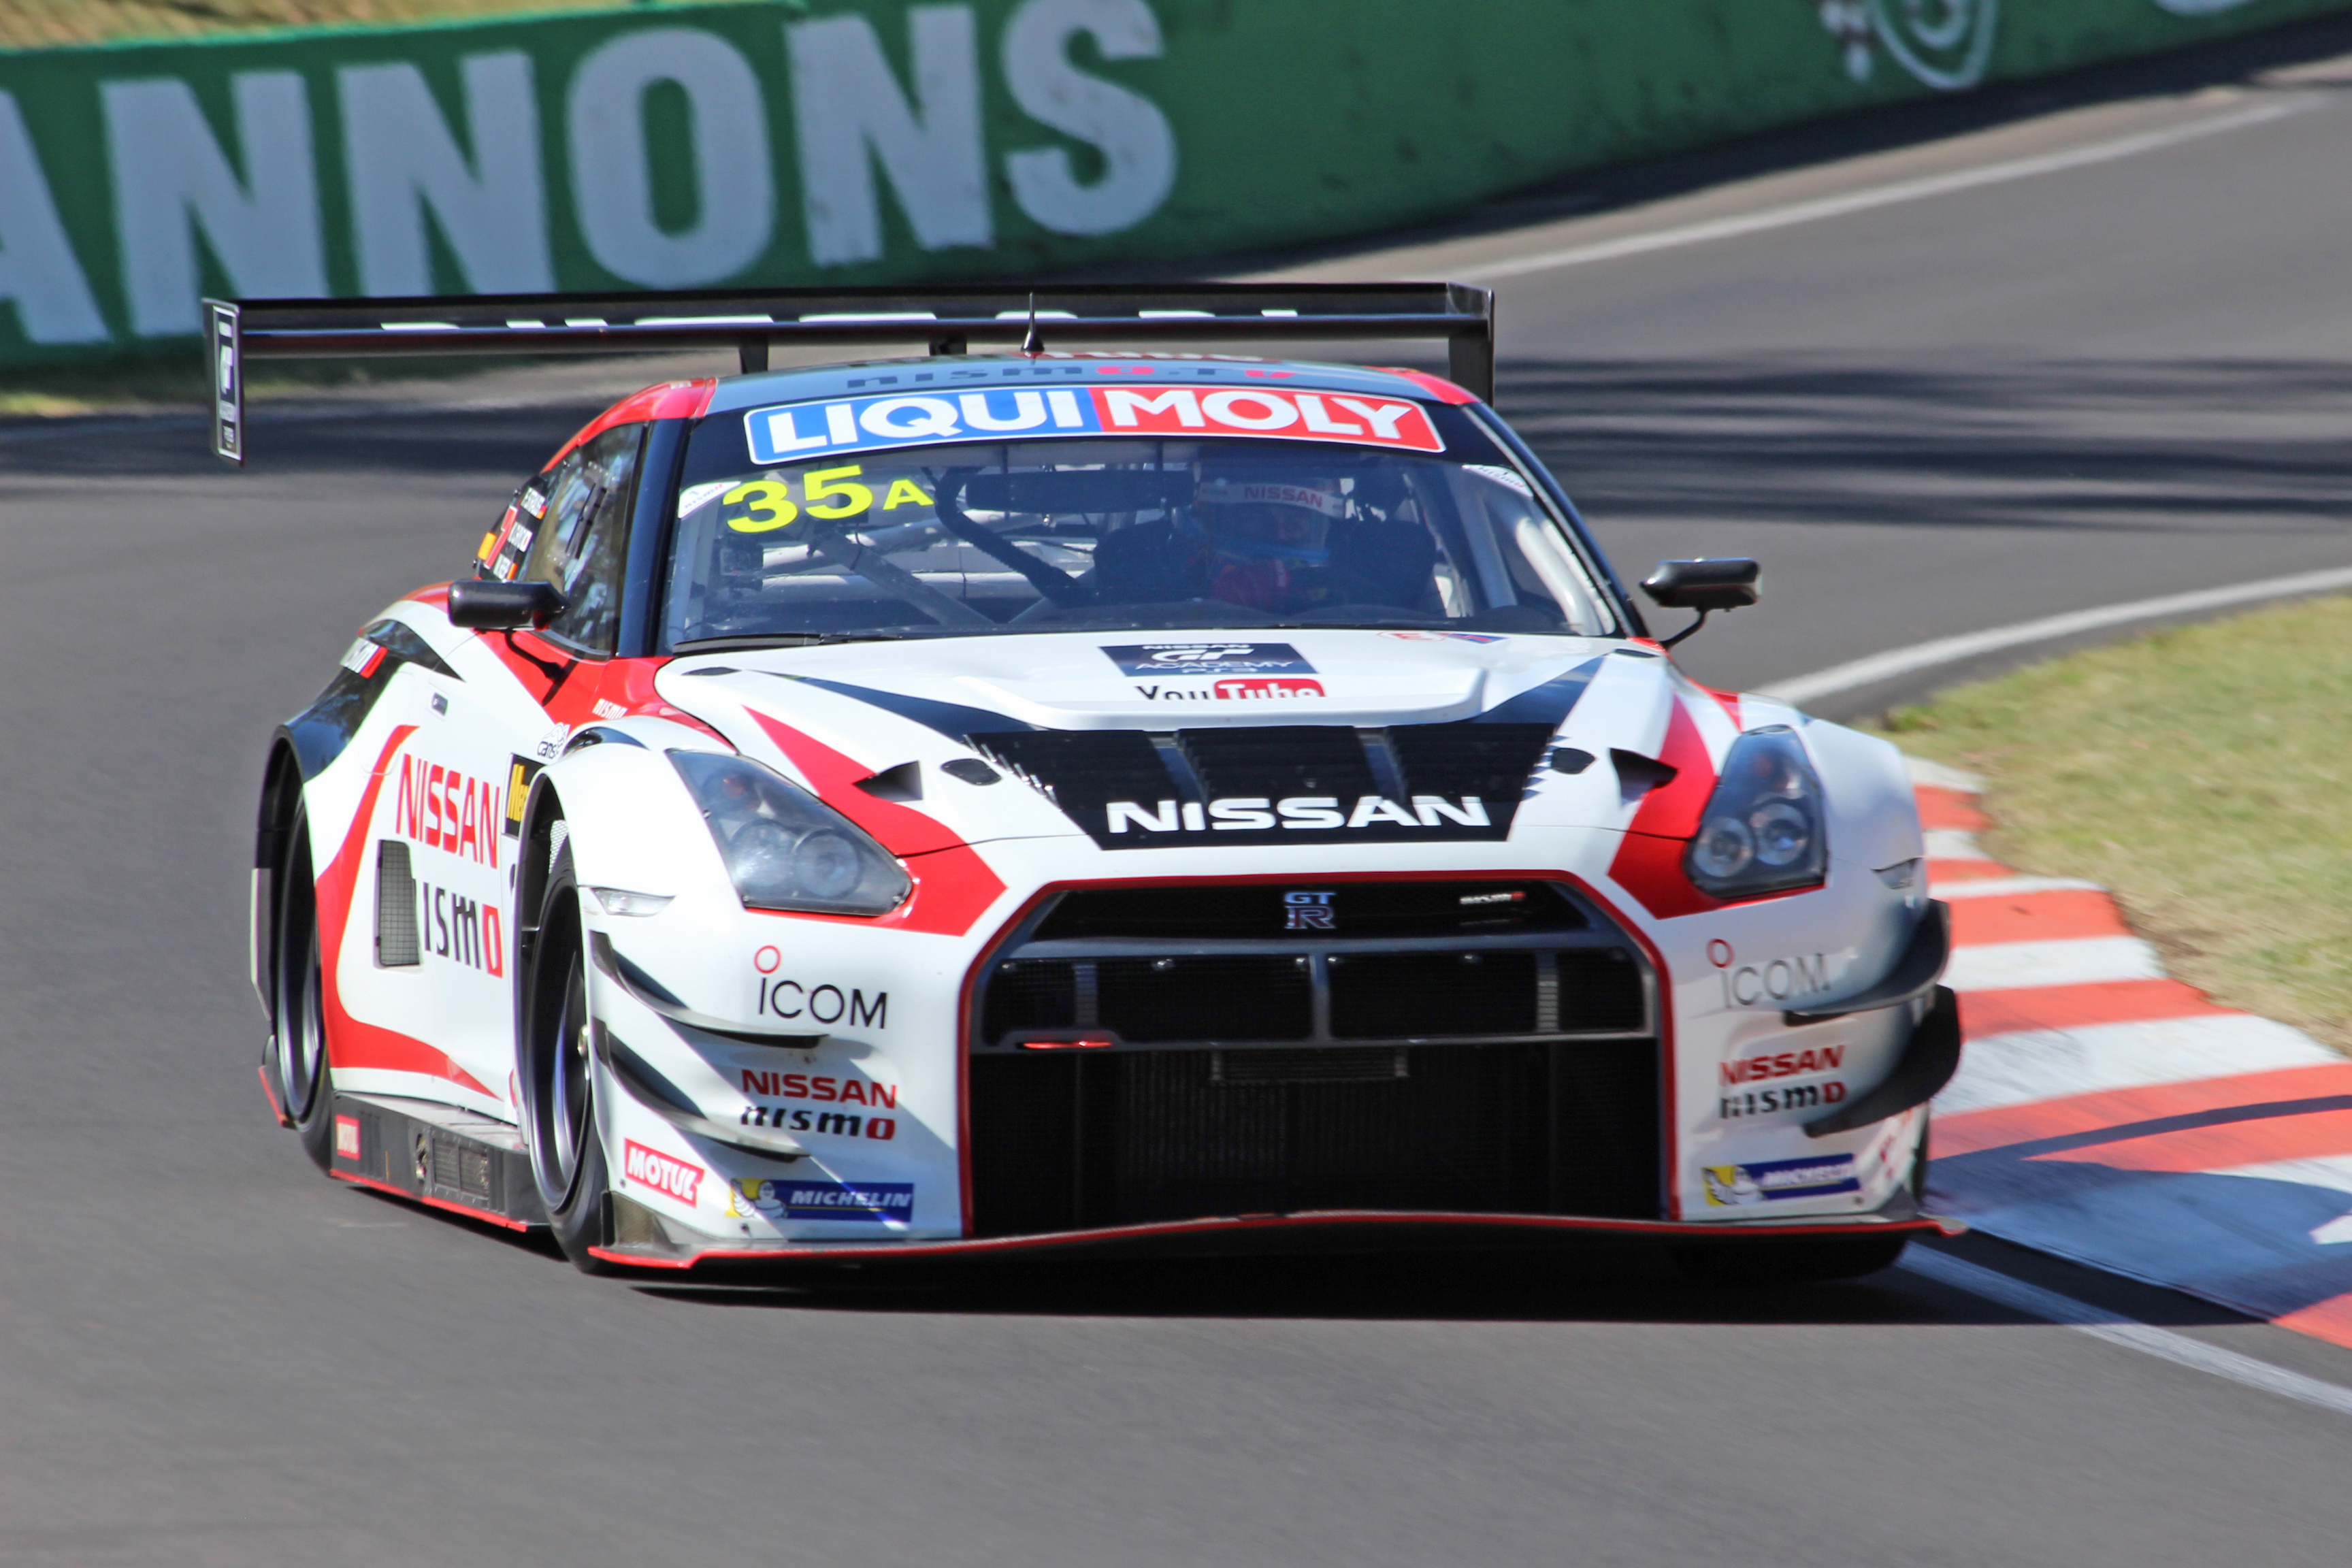 Images of Bathurst 12 Hour Endurance | 3456x2304